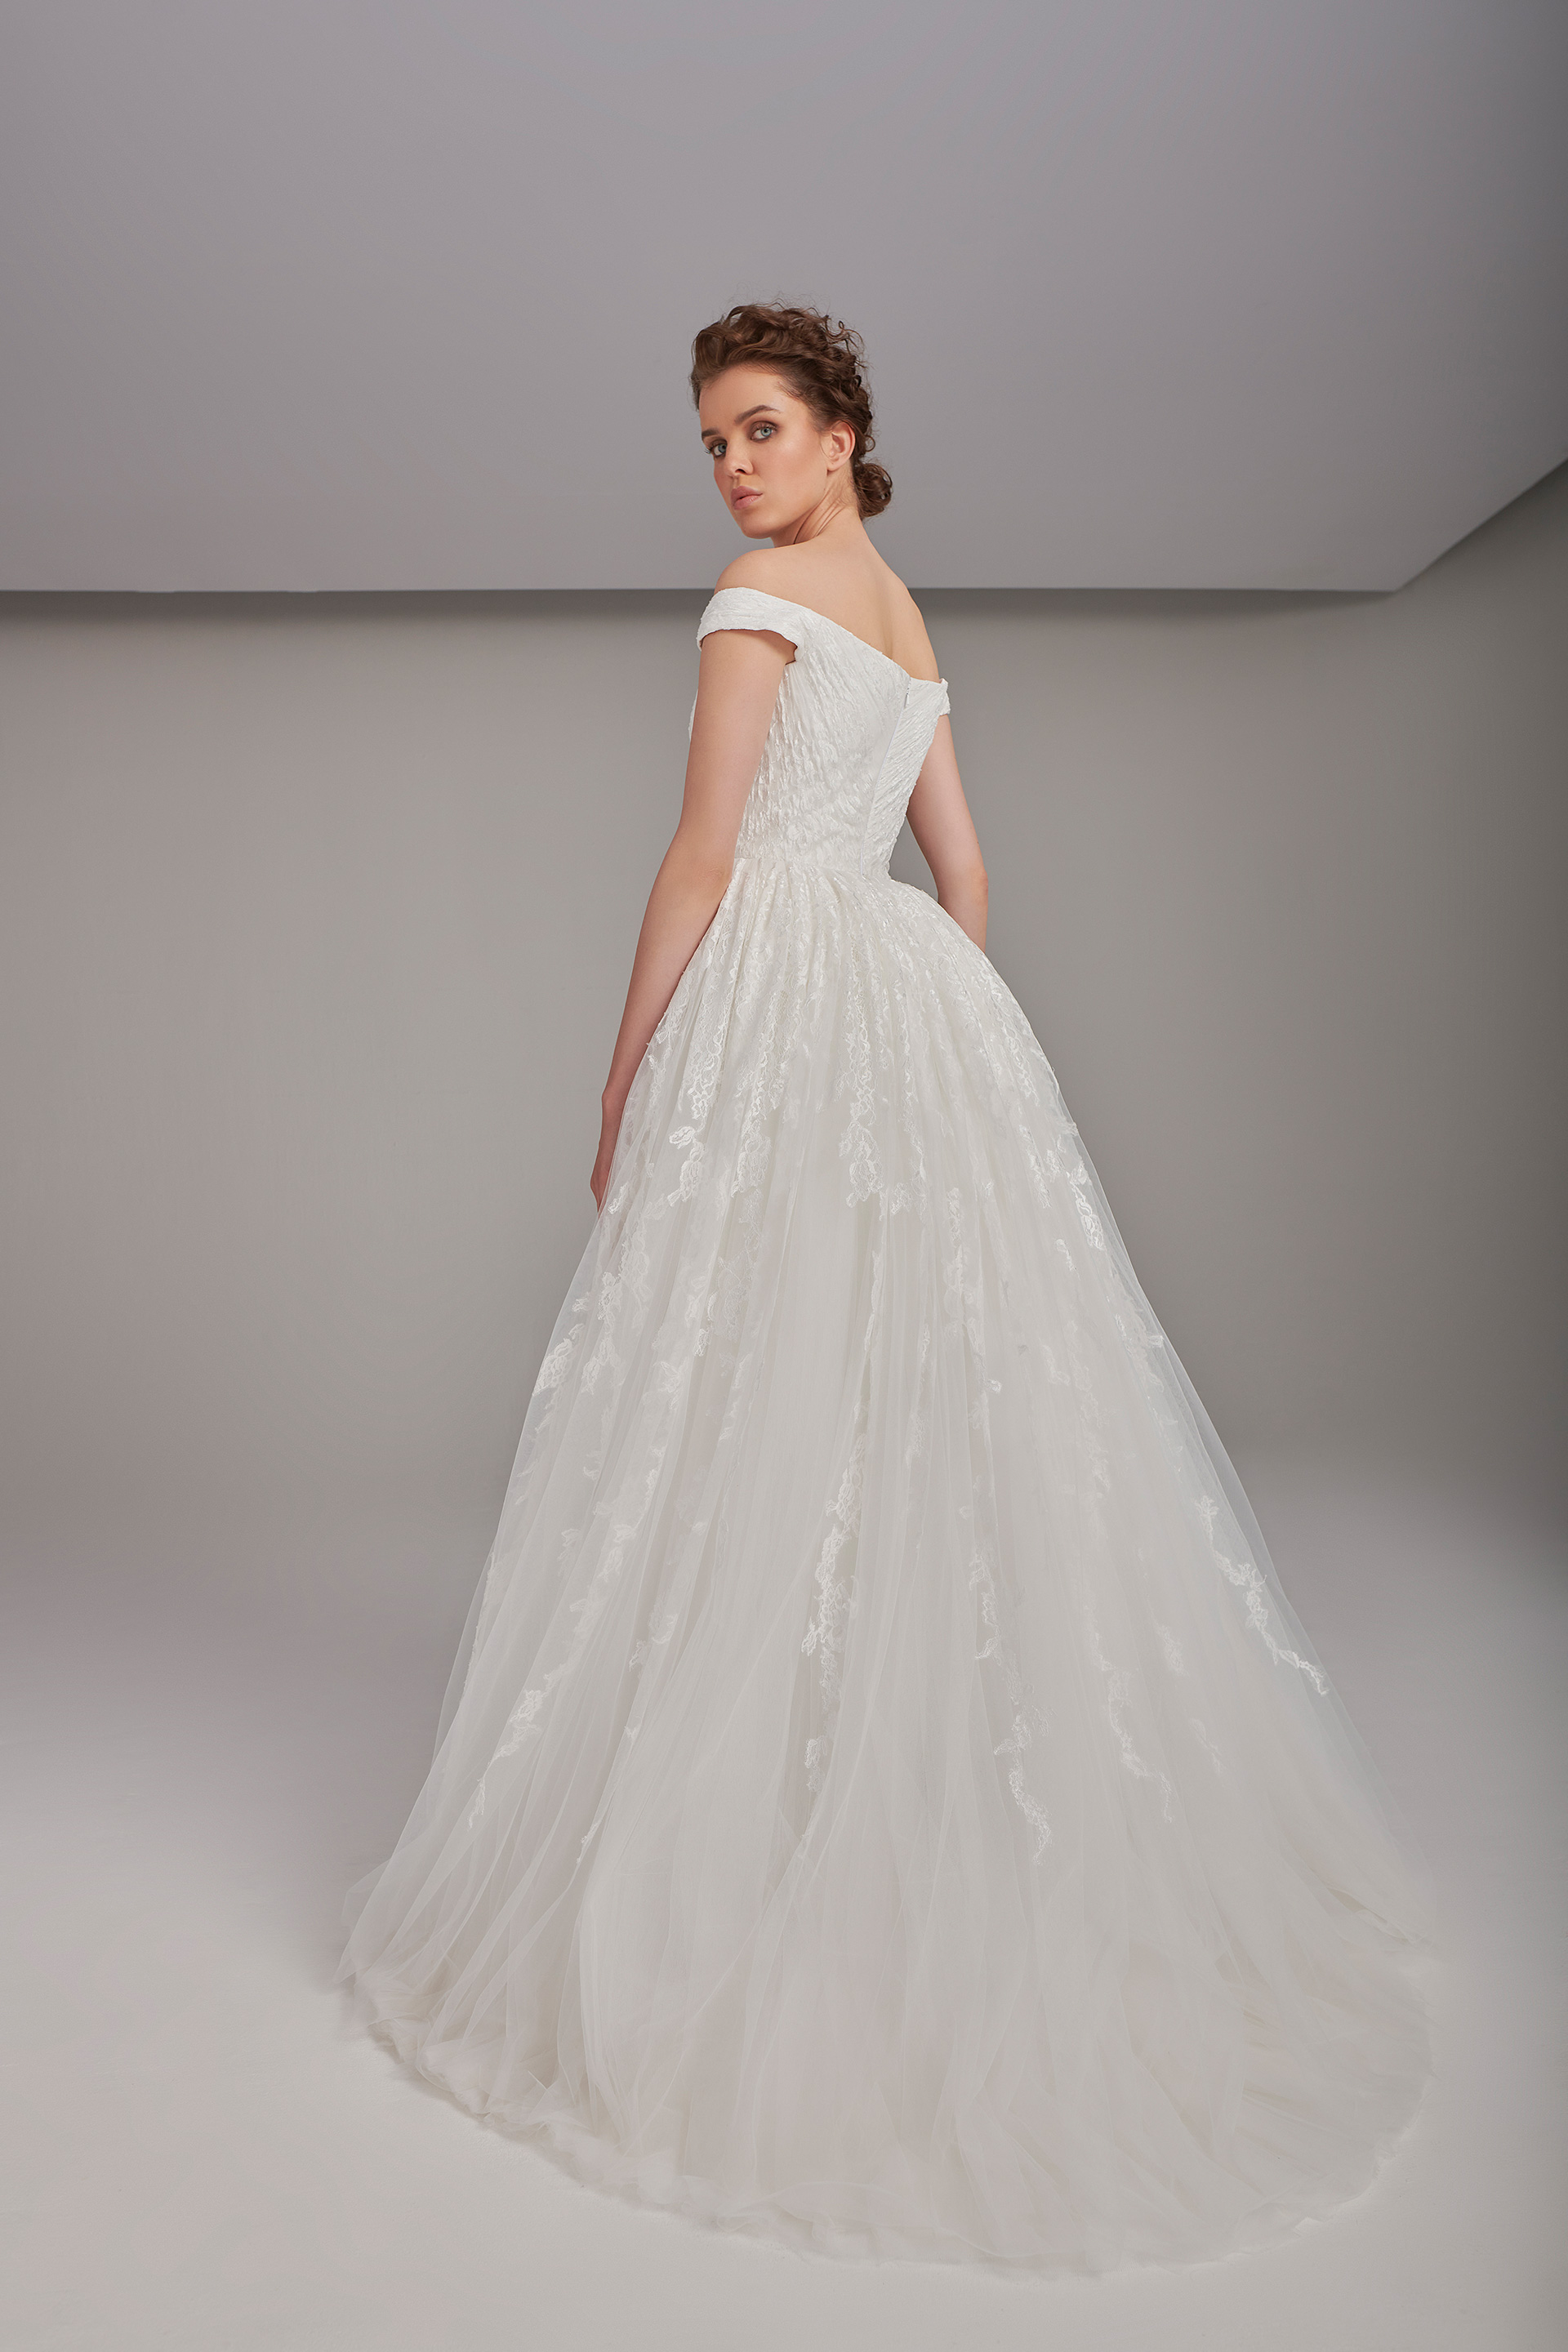 Sweetheart neckline gown with embroidered lace